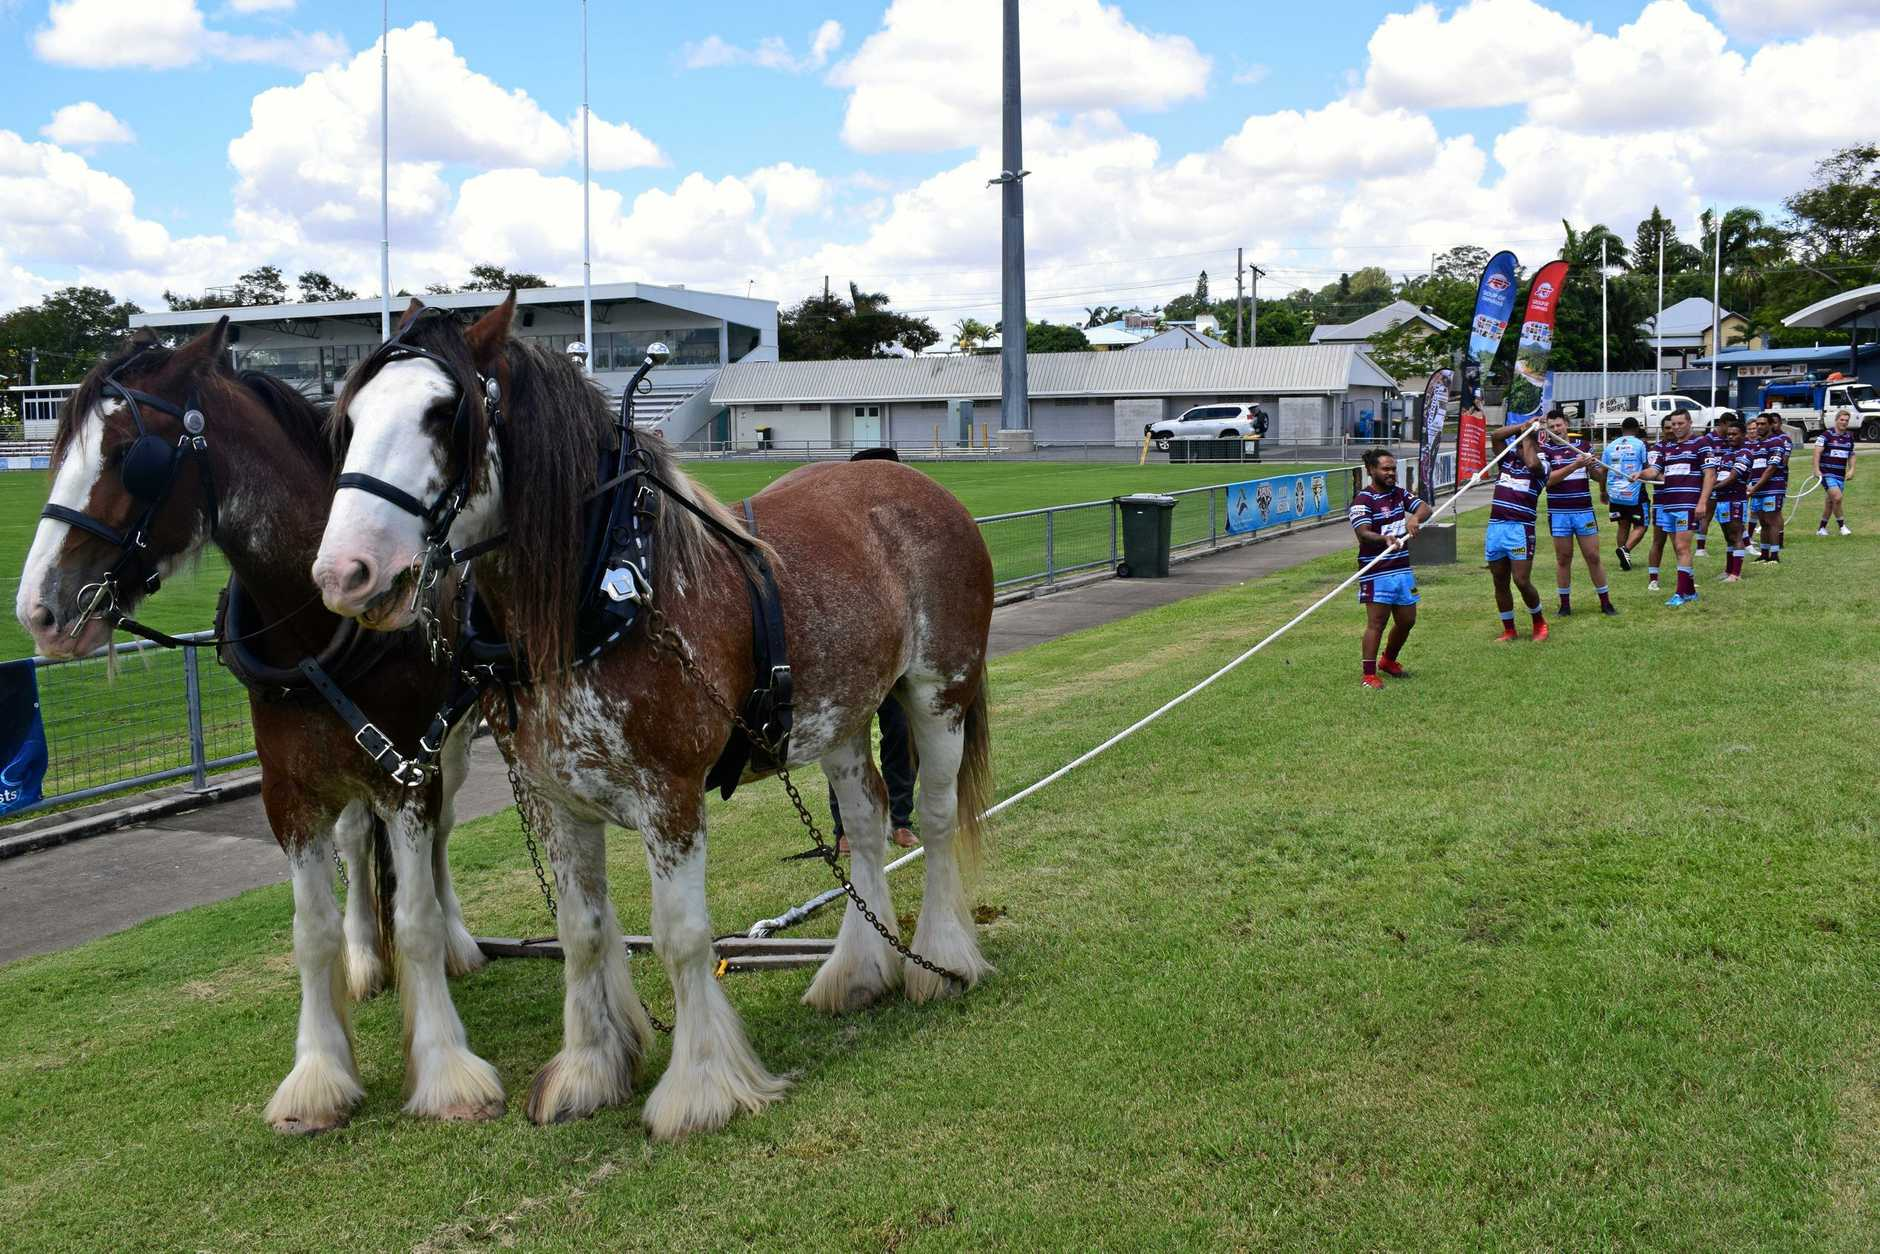 CQ Capras players did a tug-of-war with the Clydesdale horses as part of their pre-season training.